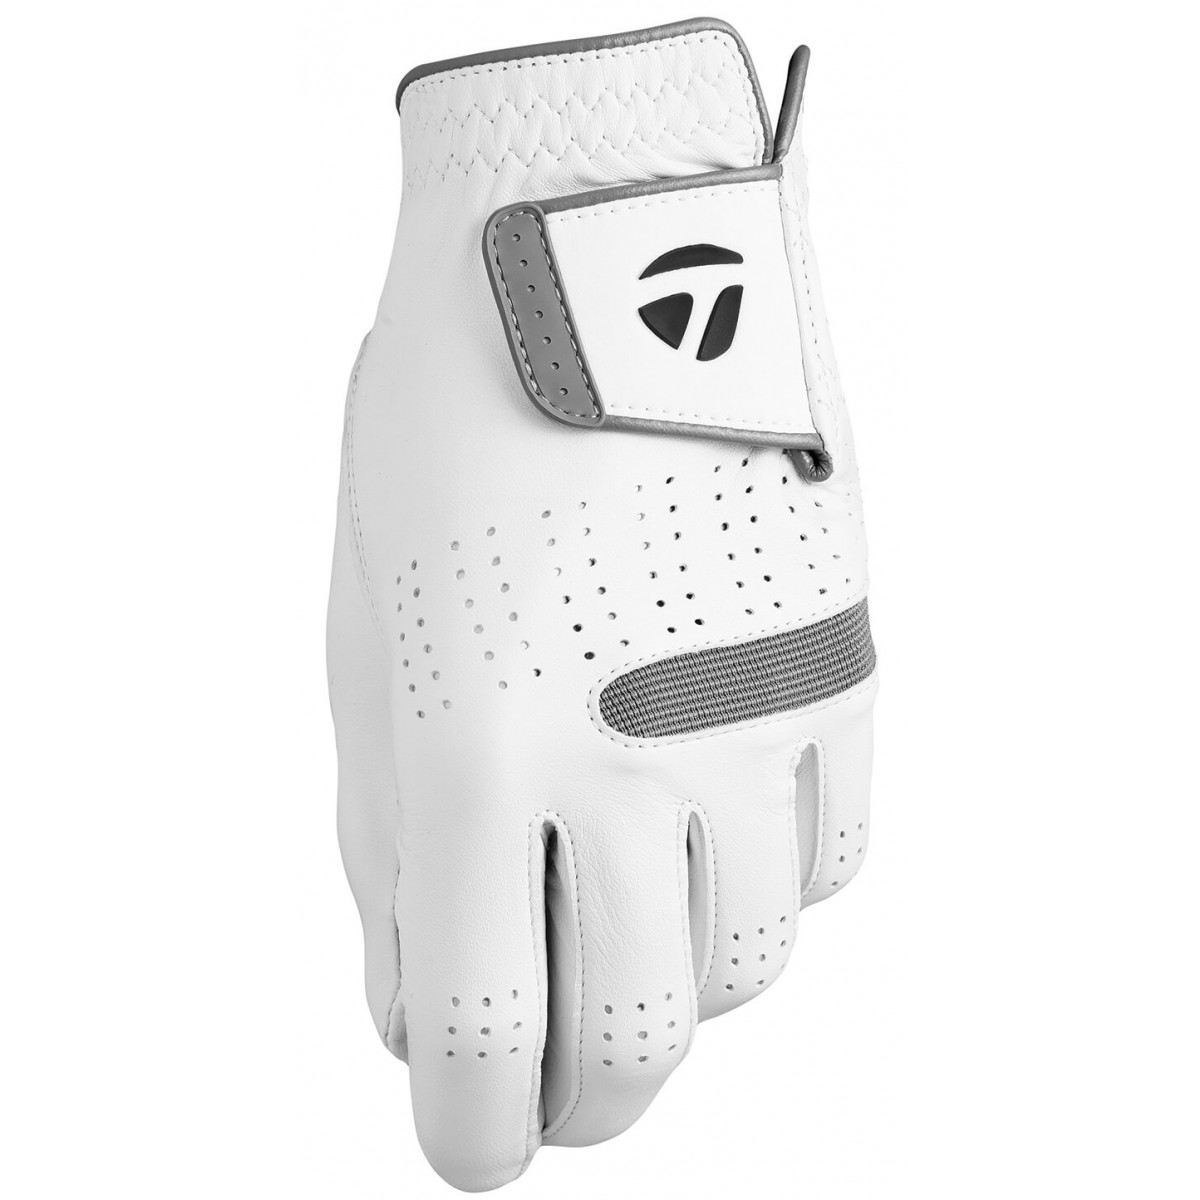 TaylorMade TP Flex Golf Glove - Men's LH Cadet